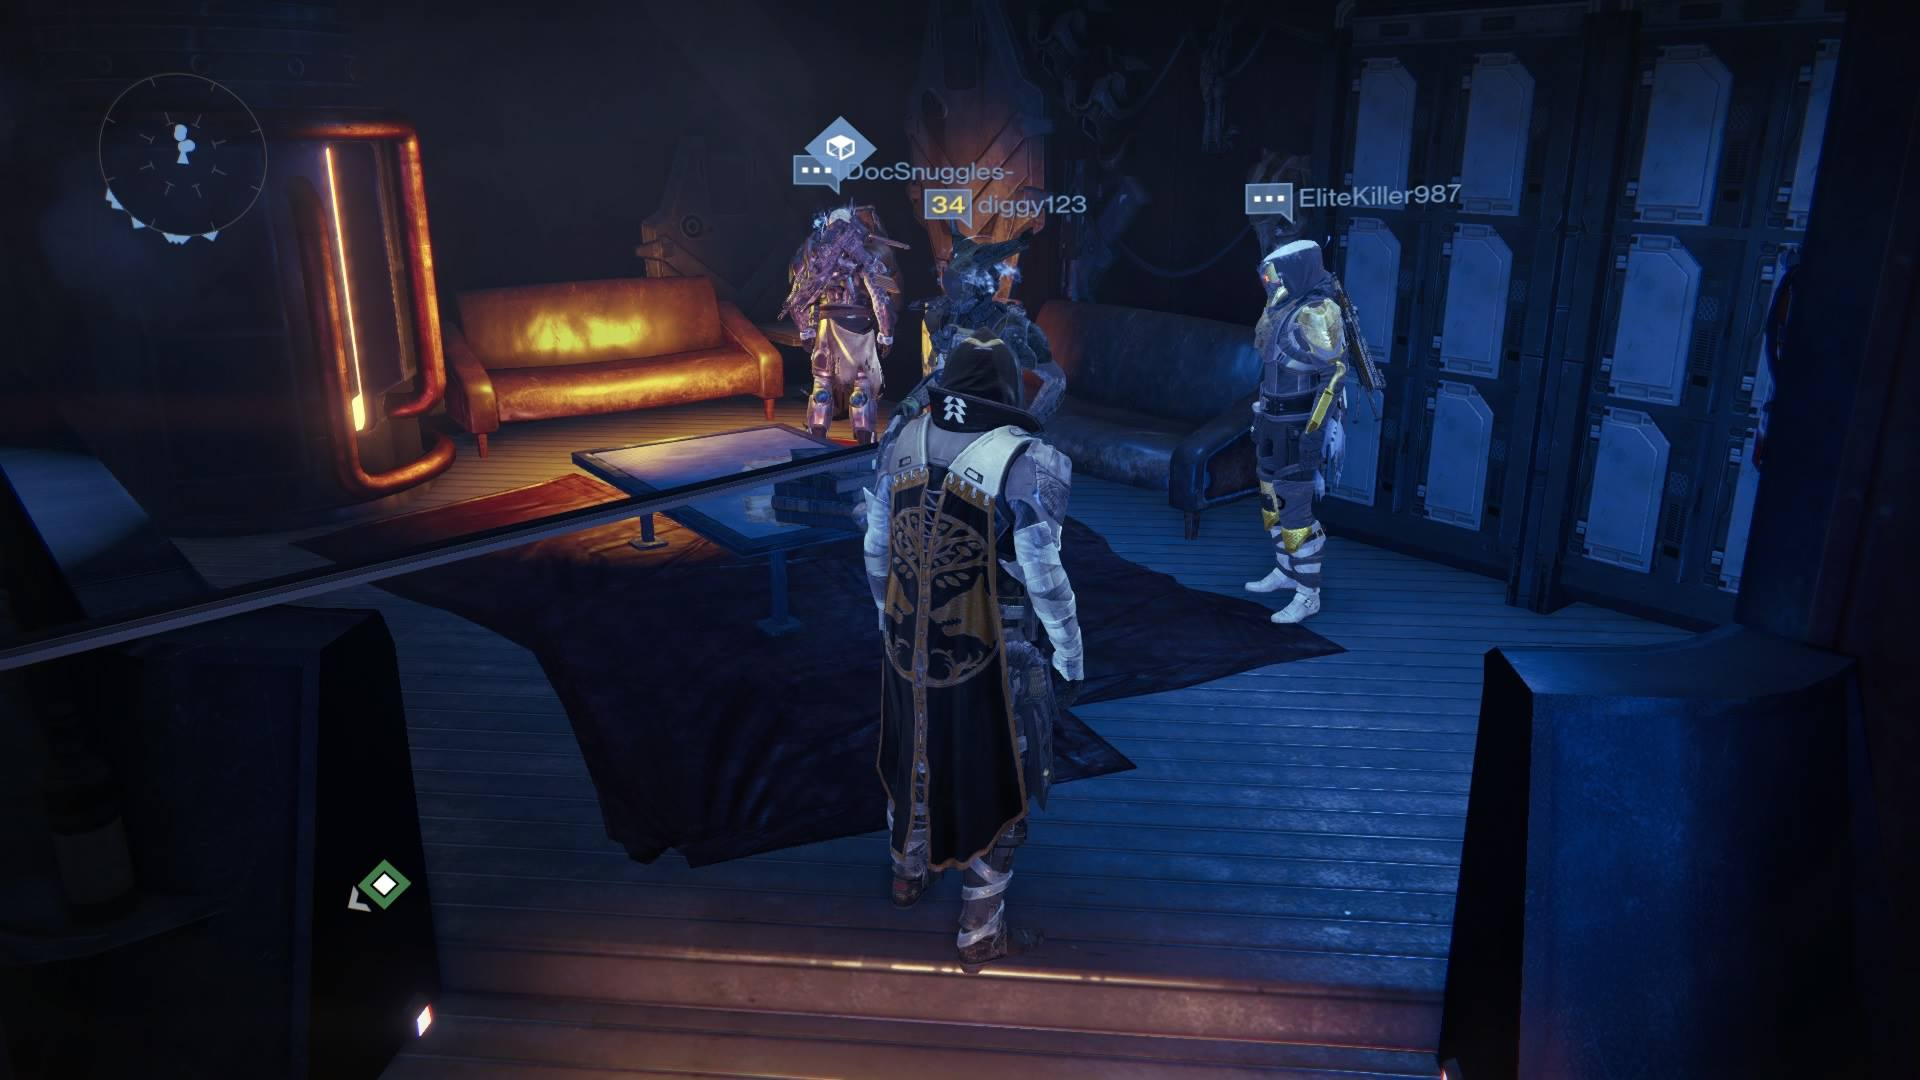 Xur – Agent of the Nine can be found in the Hunter's Lounge area, below the Hangar.